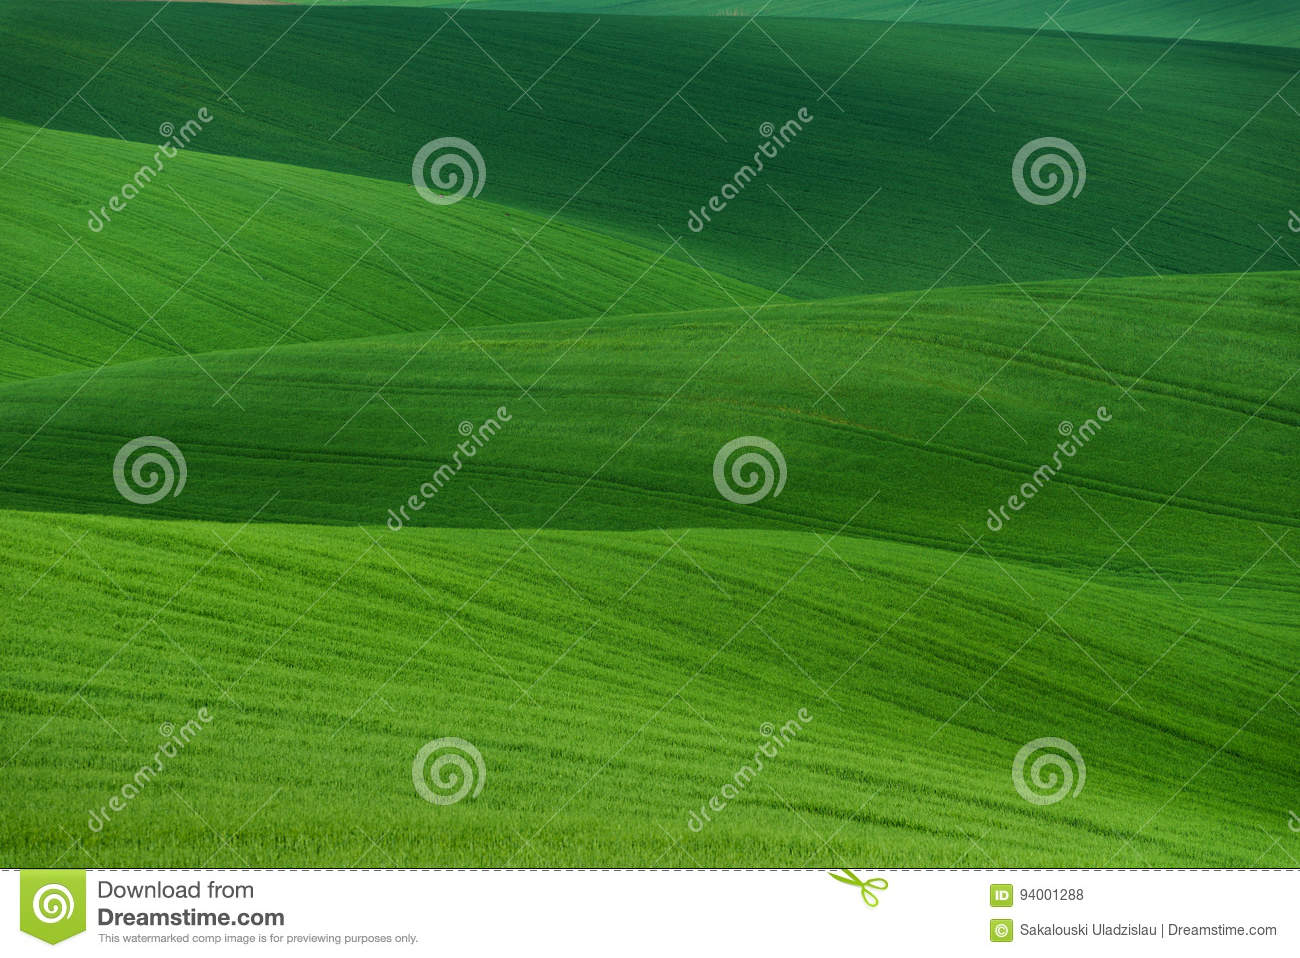 Wavy summer rural landscape in green color. Natural Green Background texture. Green moravian spring undulating fields of crops